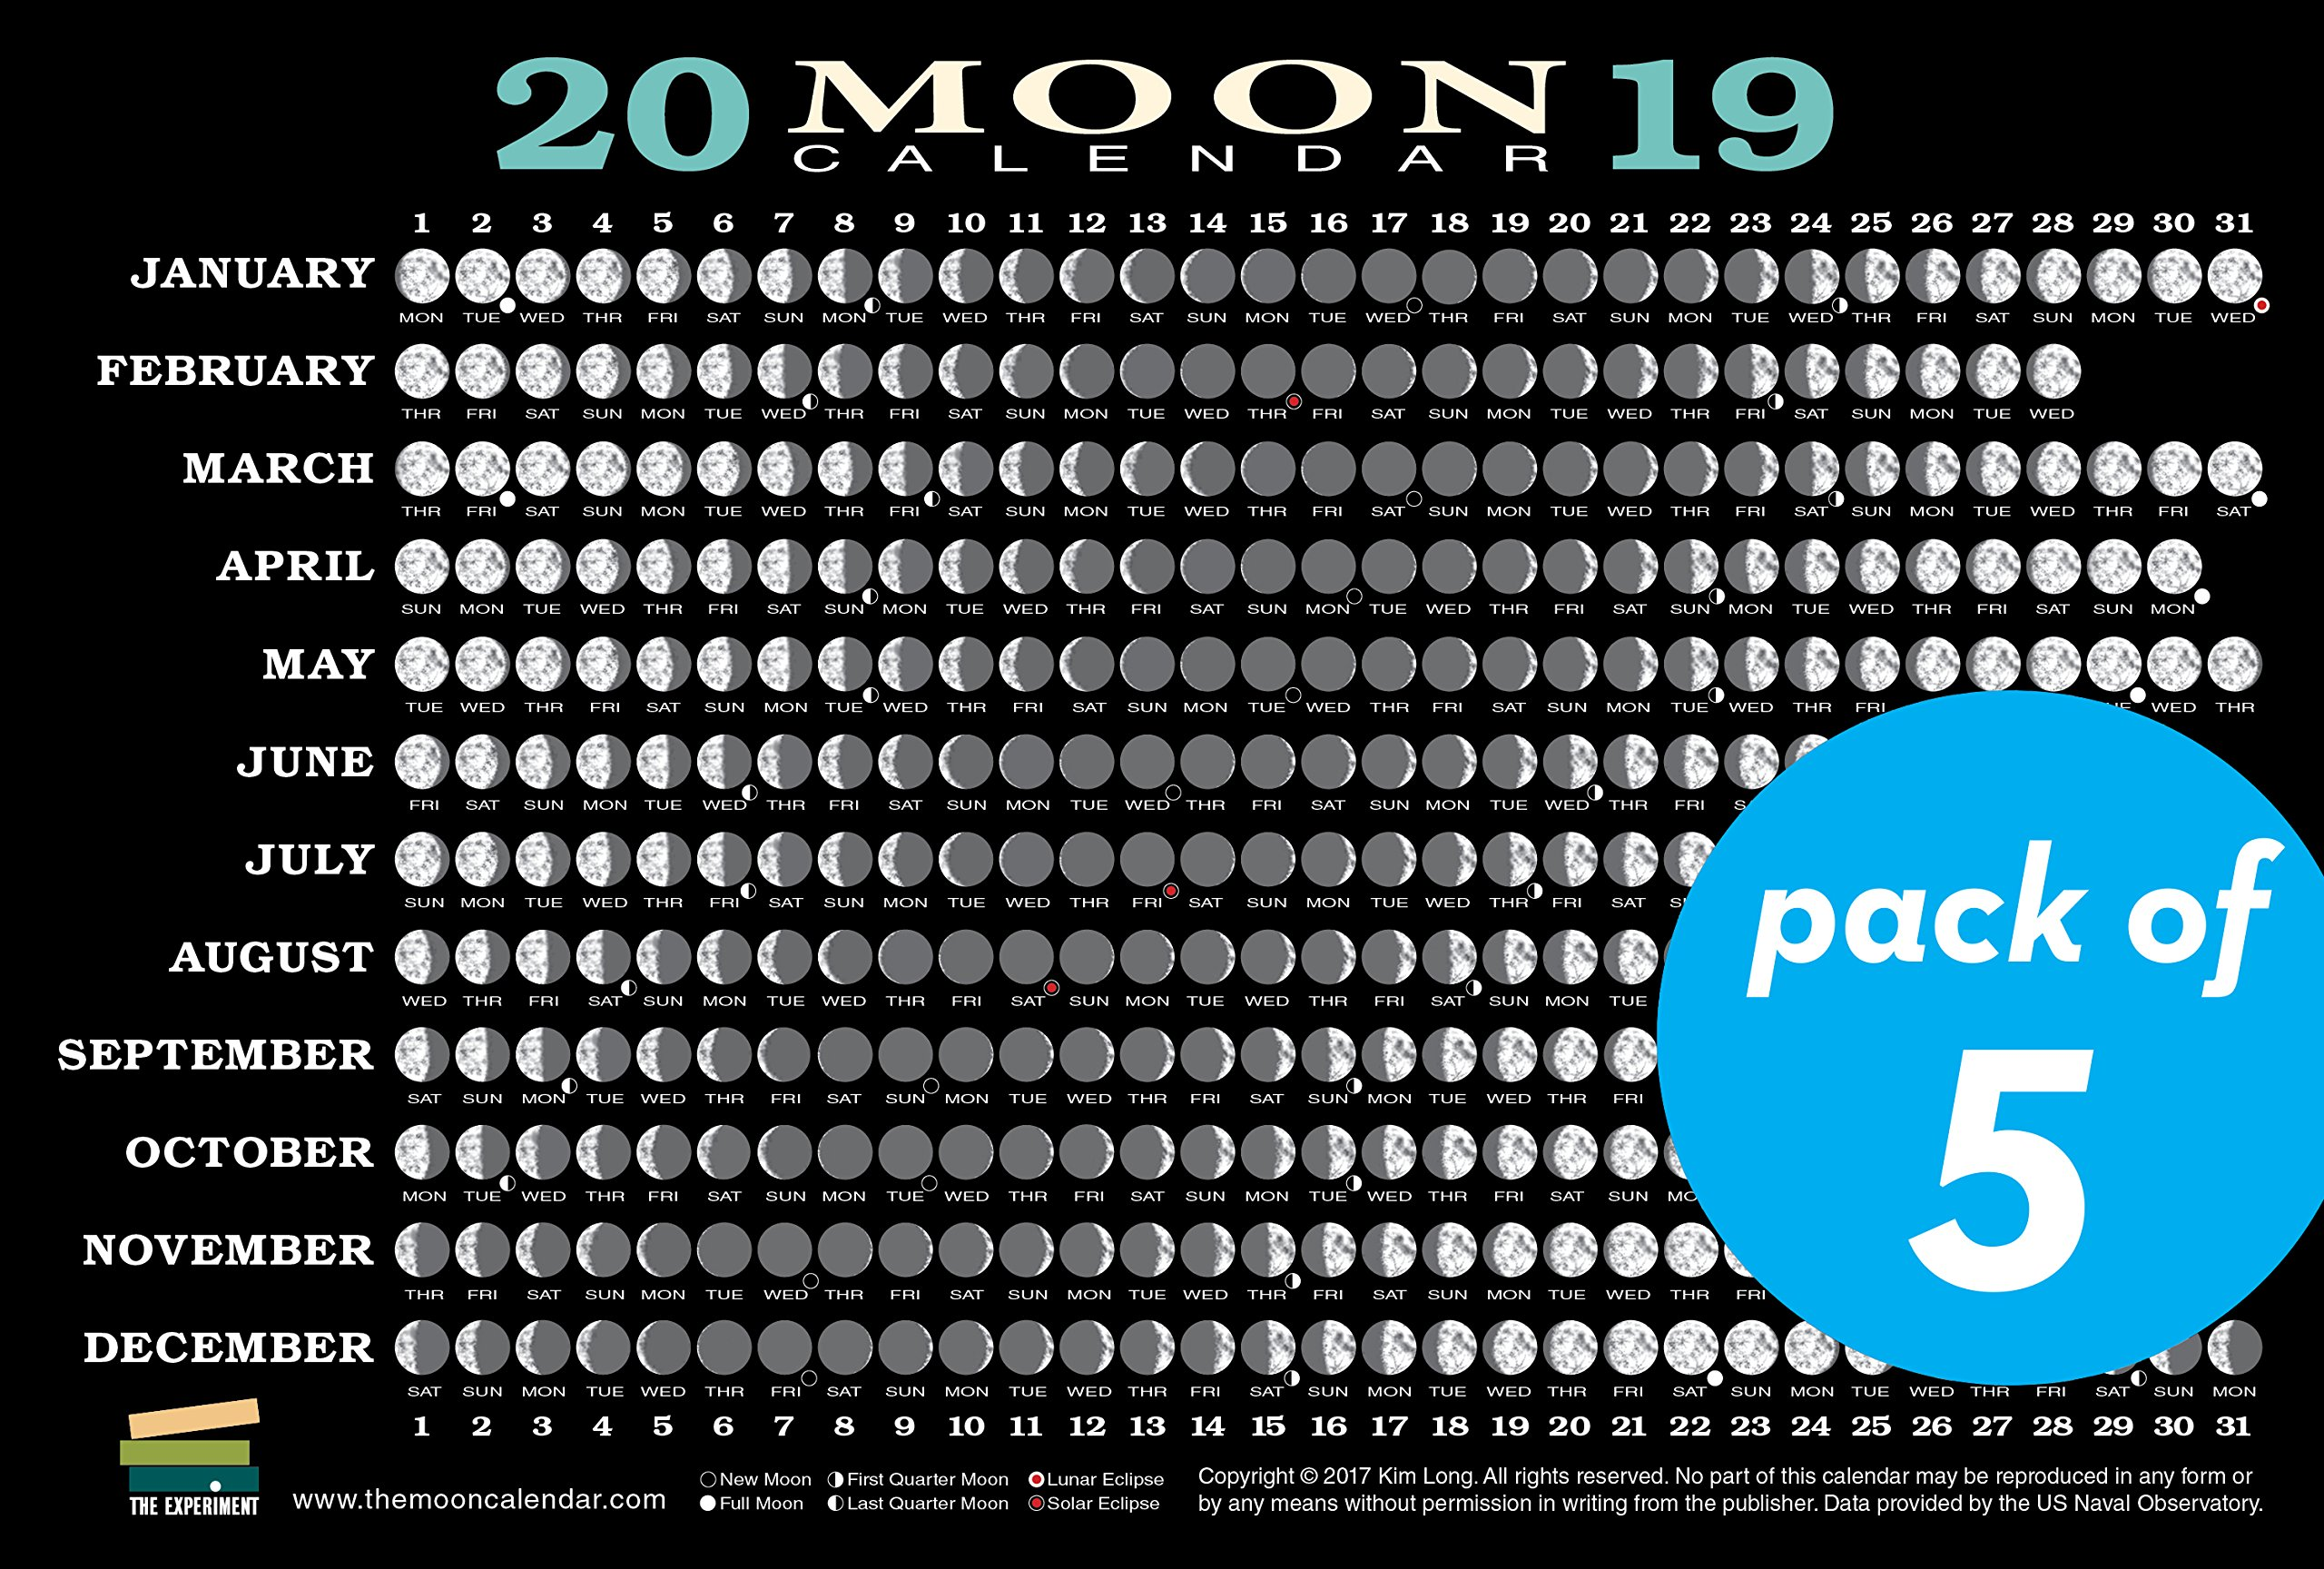 Moon Phases Calendar.2019 Moon Calendar Card 5 Pack Lunar Phases Eclipses And More